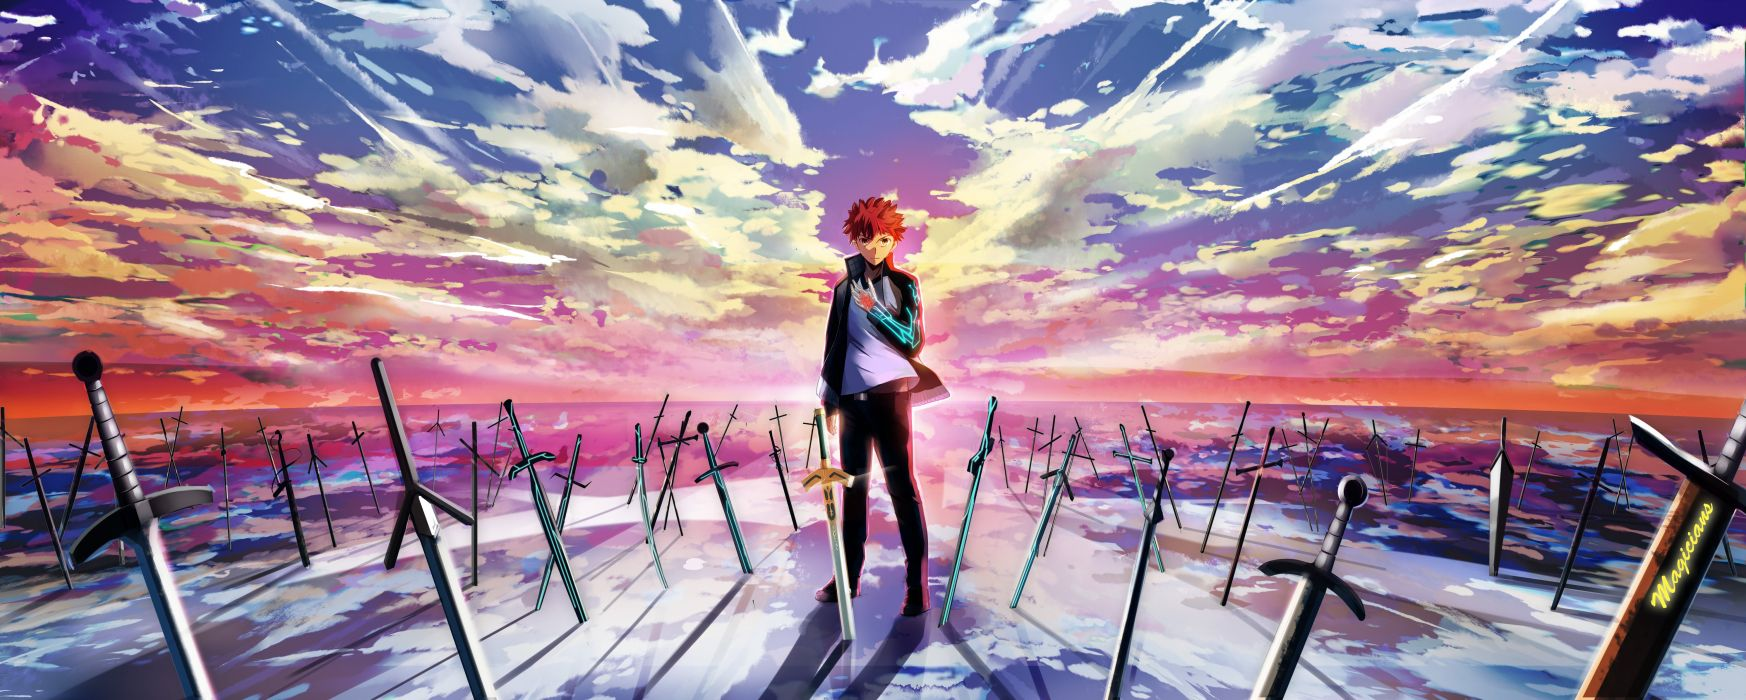 anime all male clouds dualscreen emiya shirou fate stay night magicians male red hair scenic short hair sky sword weapon wallpaper